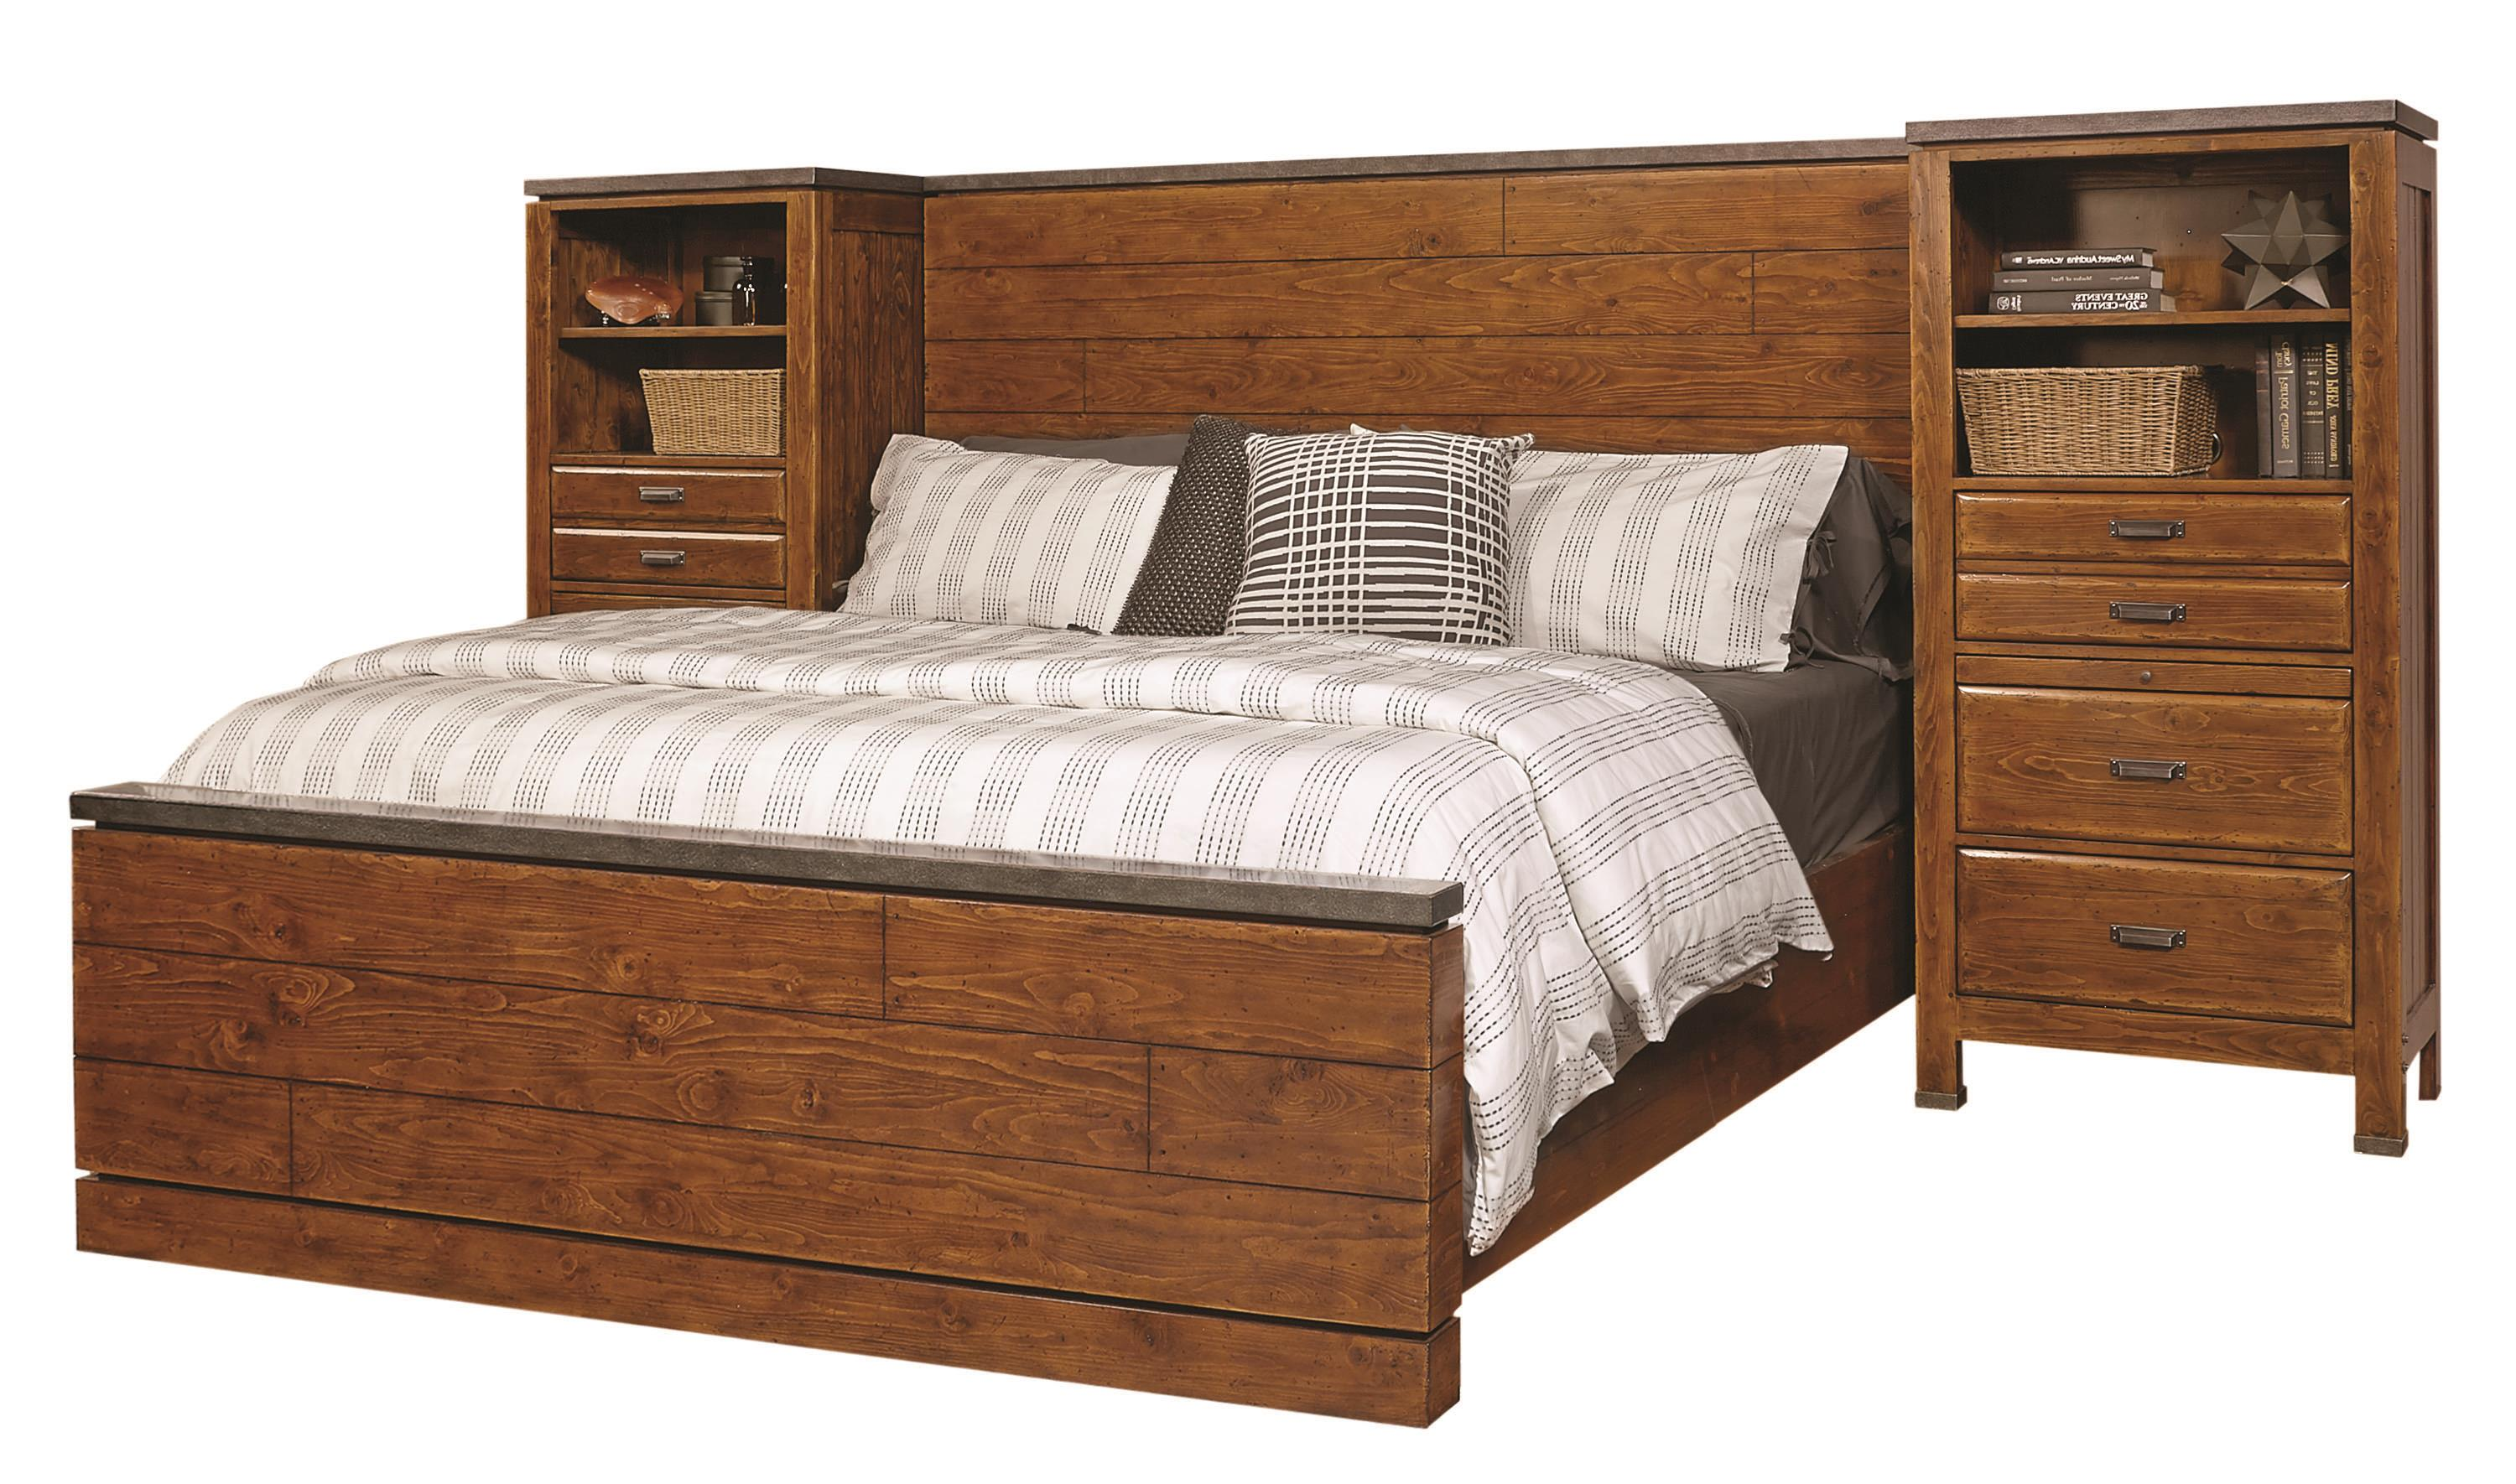 Aspenhome Rockland King Panel Wall Bed - Item Number: I58-495+496+406+2x487